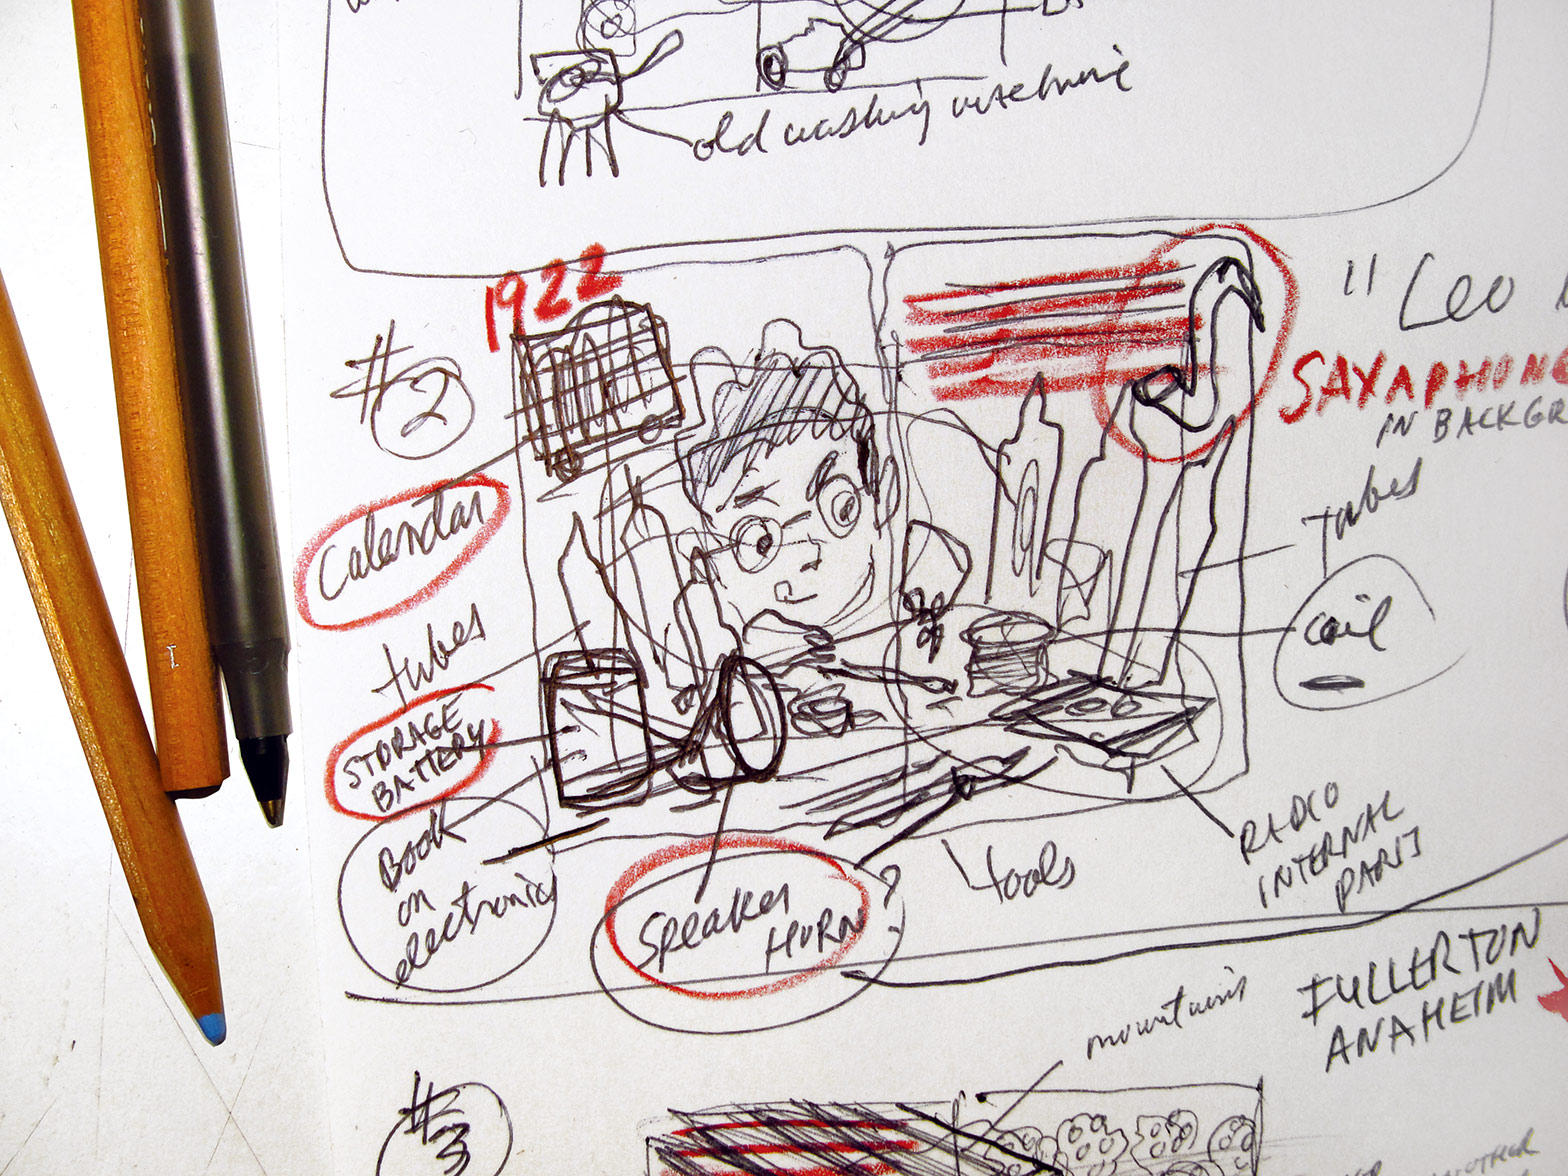 one of the rough preliminary storyboard thumbnail sketches for  Gizmos, Gadgets, and Guitars  –to begin working out which actions and events in the story will be illustrated… This one of Leo at age 12 when he first became interested in electronics.